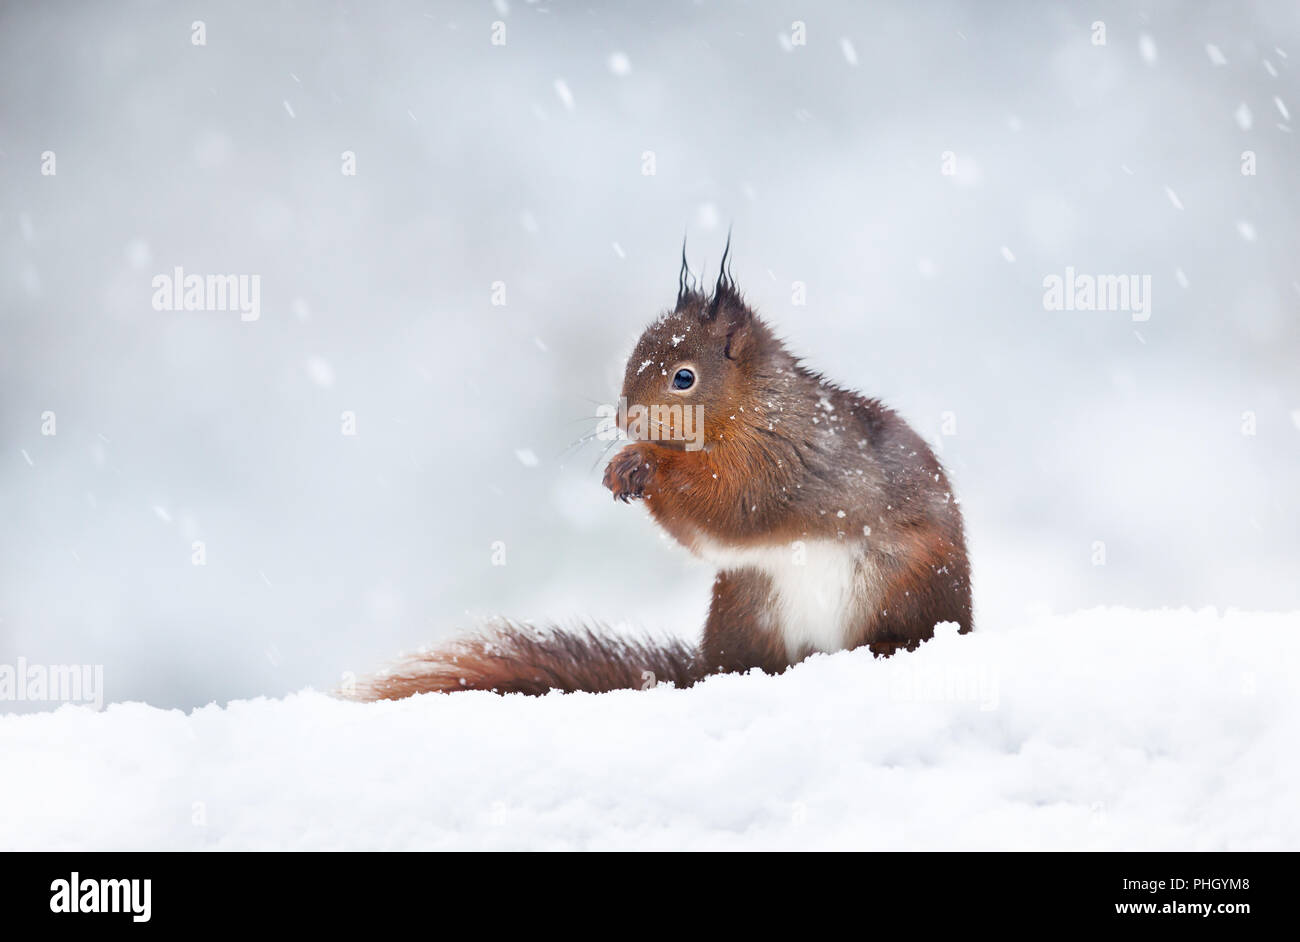 Close up of a red squirrel sitting in the snow. Snowing in England. Animals in winter. Stock Photo